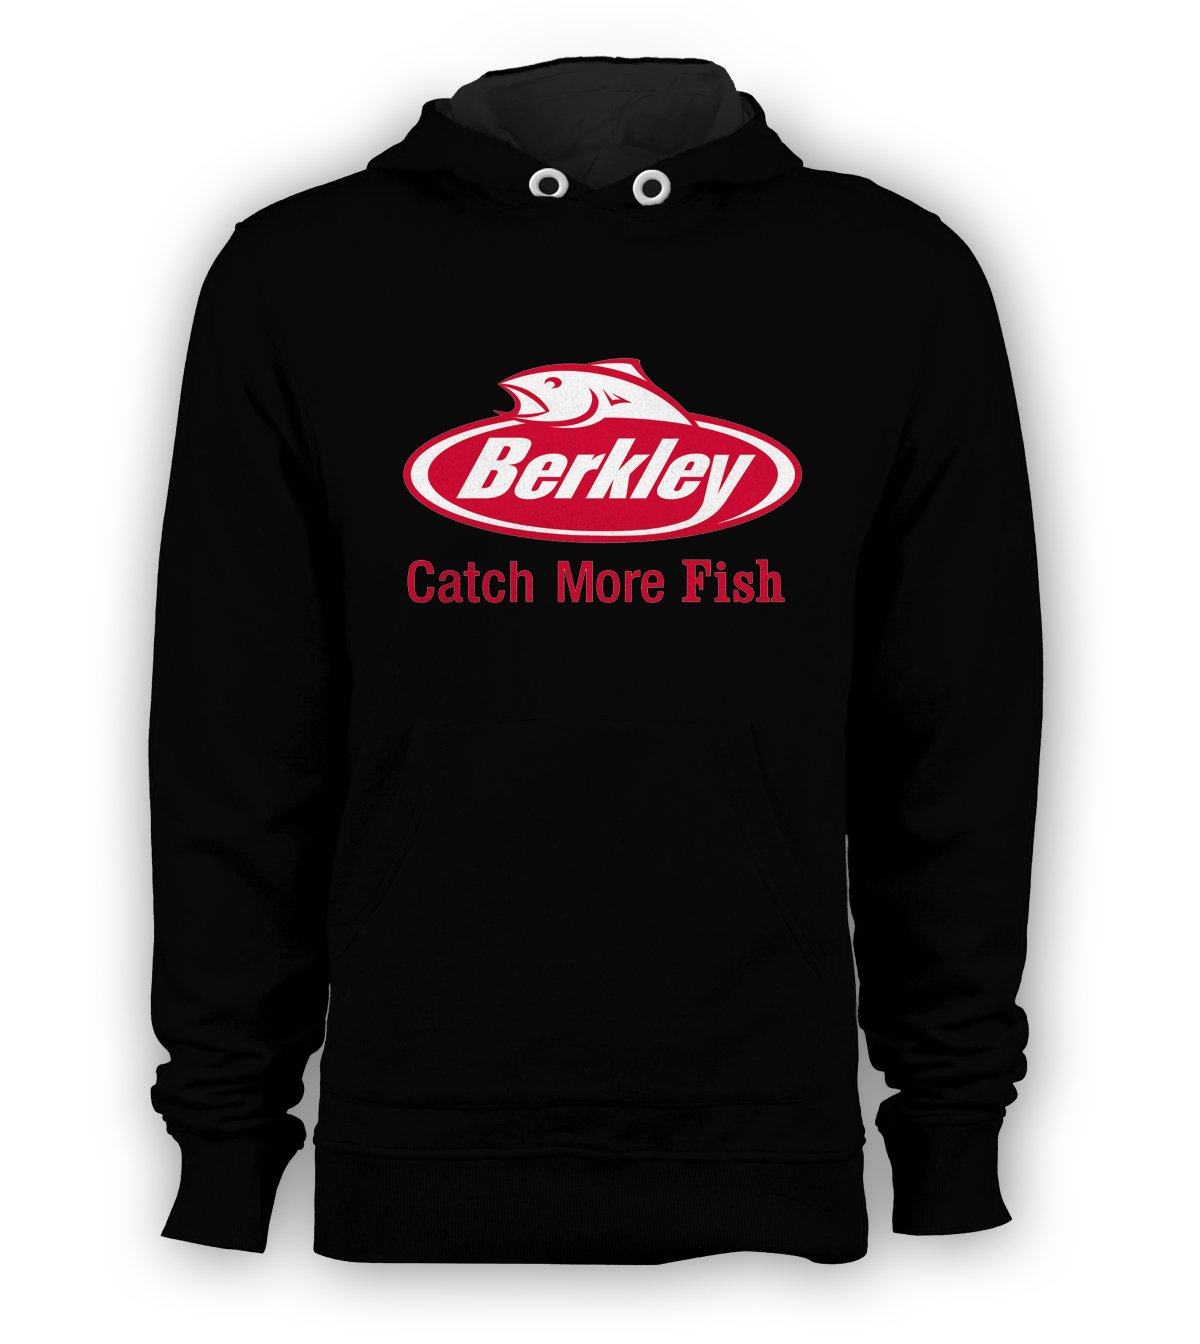 Berkley Fishing Pullover Hoodie Men Sweatshirts Size S to 3XL New Black